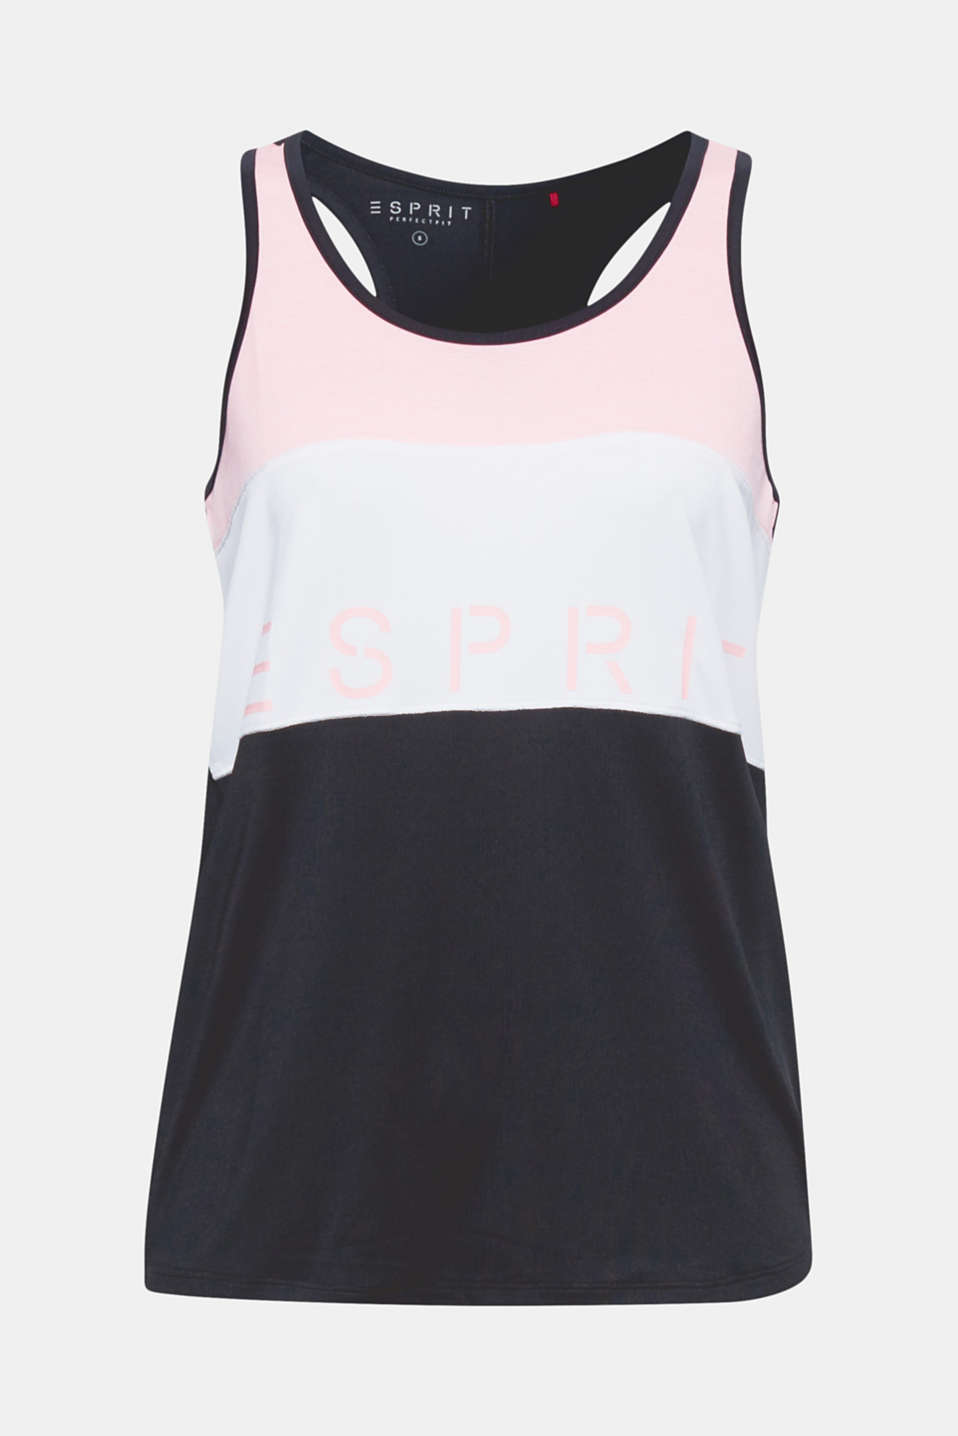 Let's go! In this active top with a sporty racer back, fresh colour blocking, a striking logo and a stylish neon logo, you are sure to be perfectly styled.